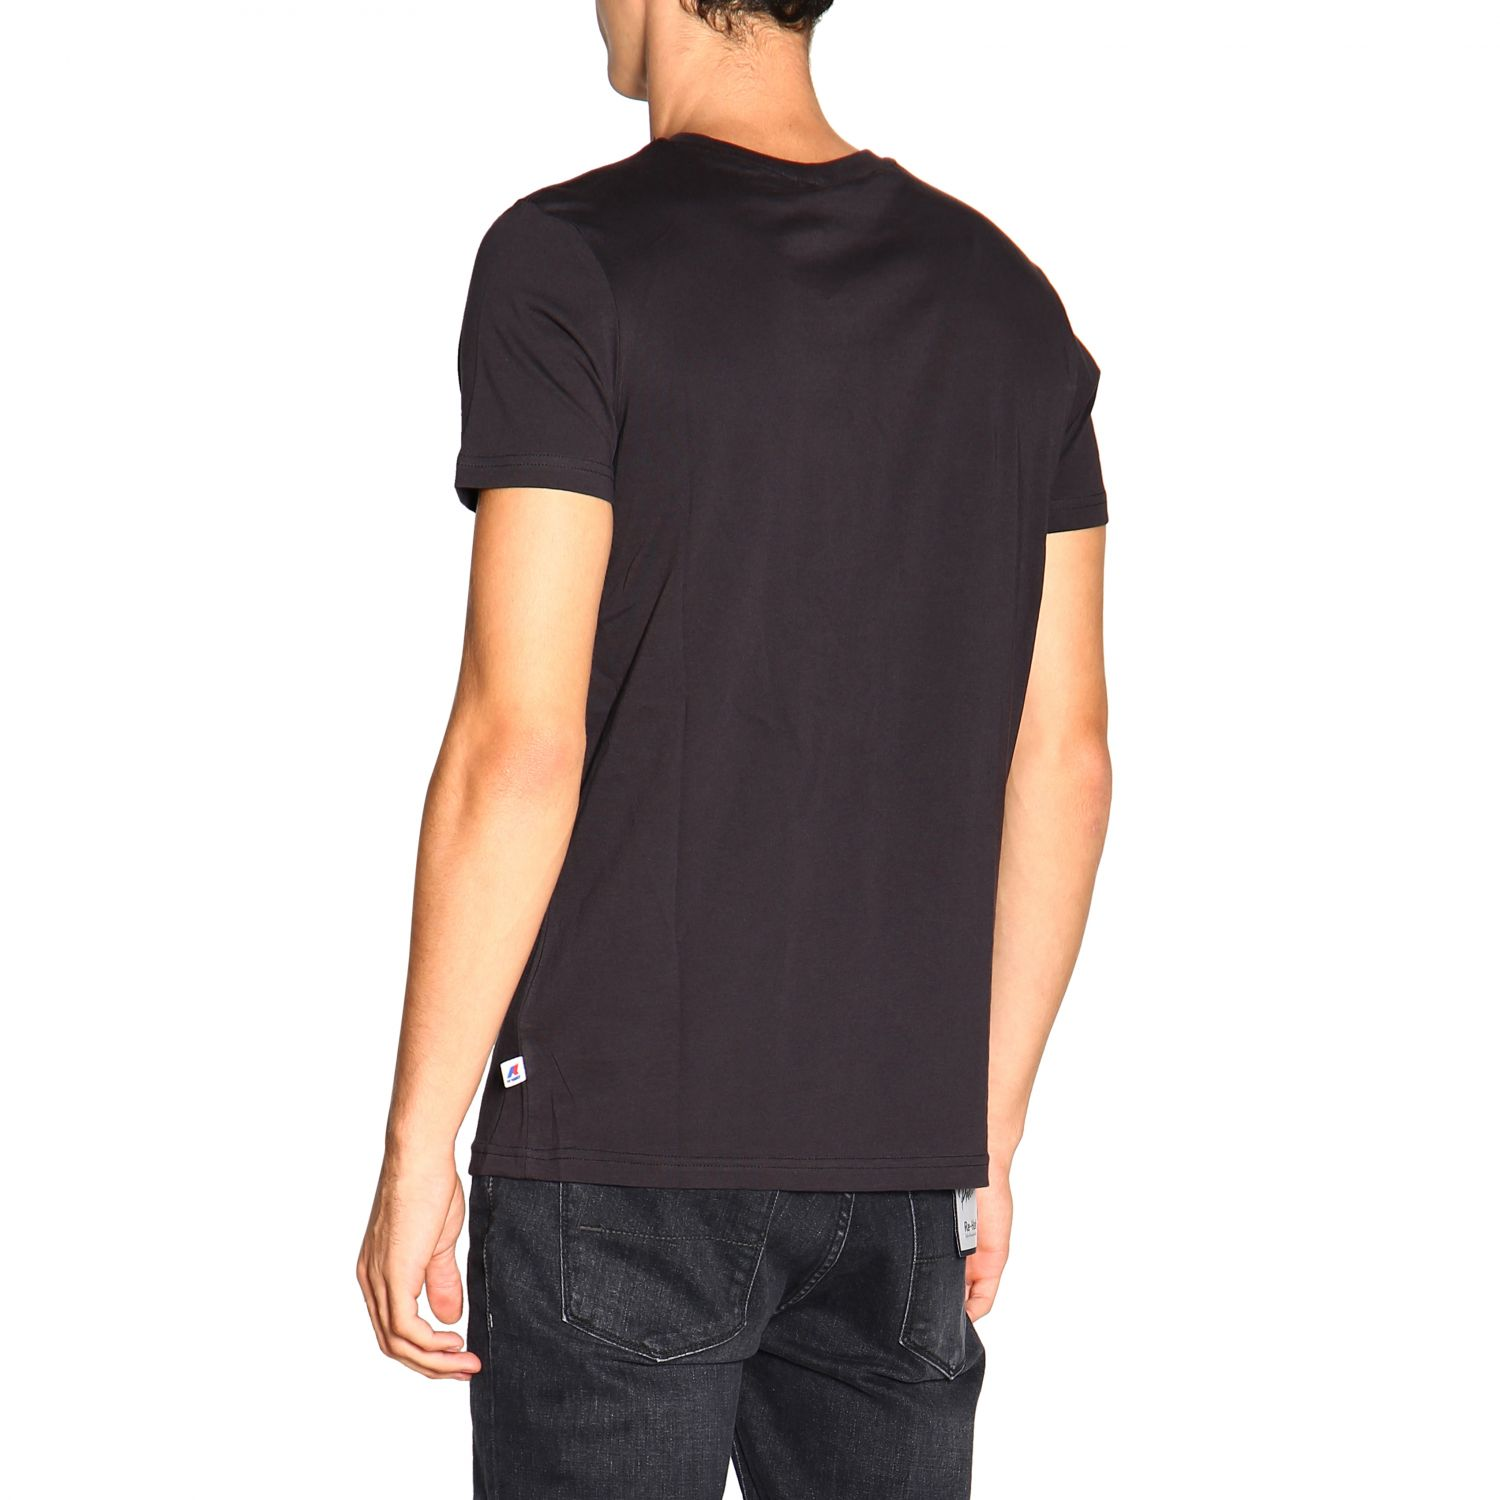 T-shirt men K-way black 3